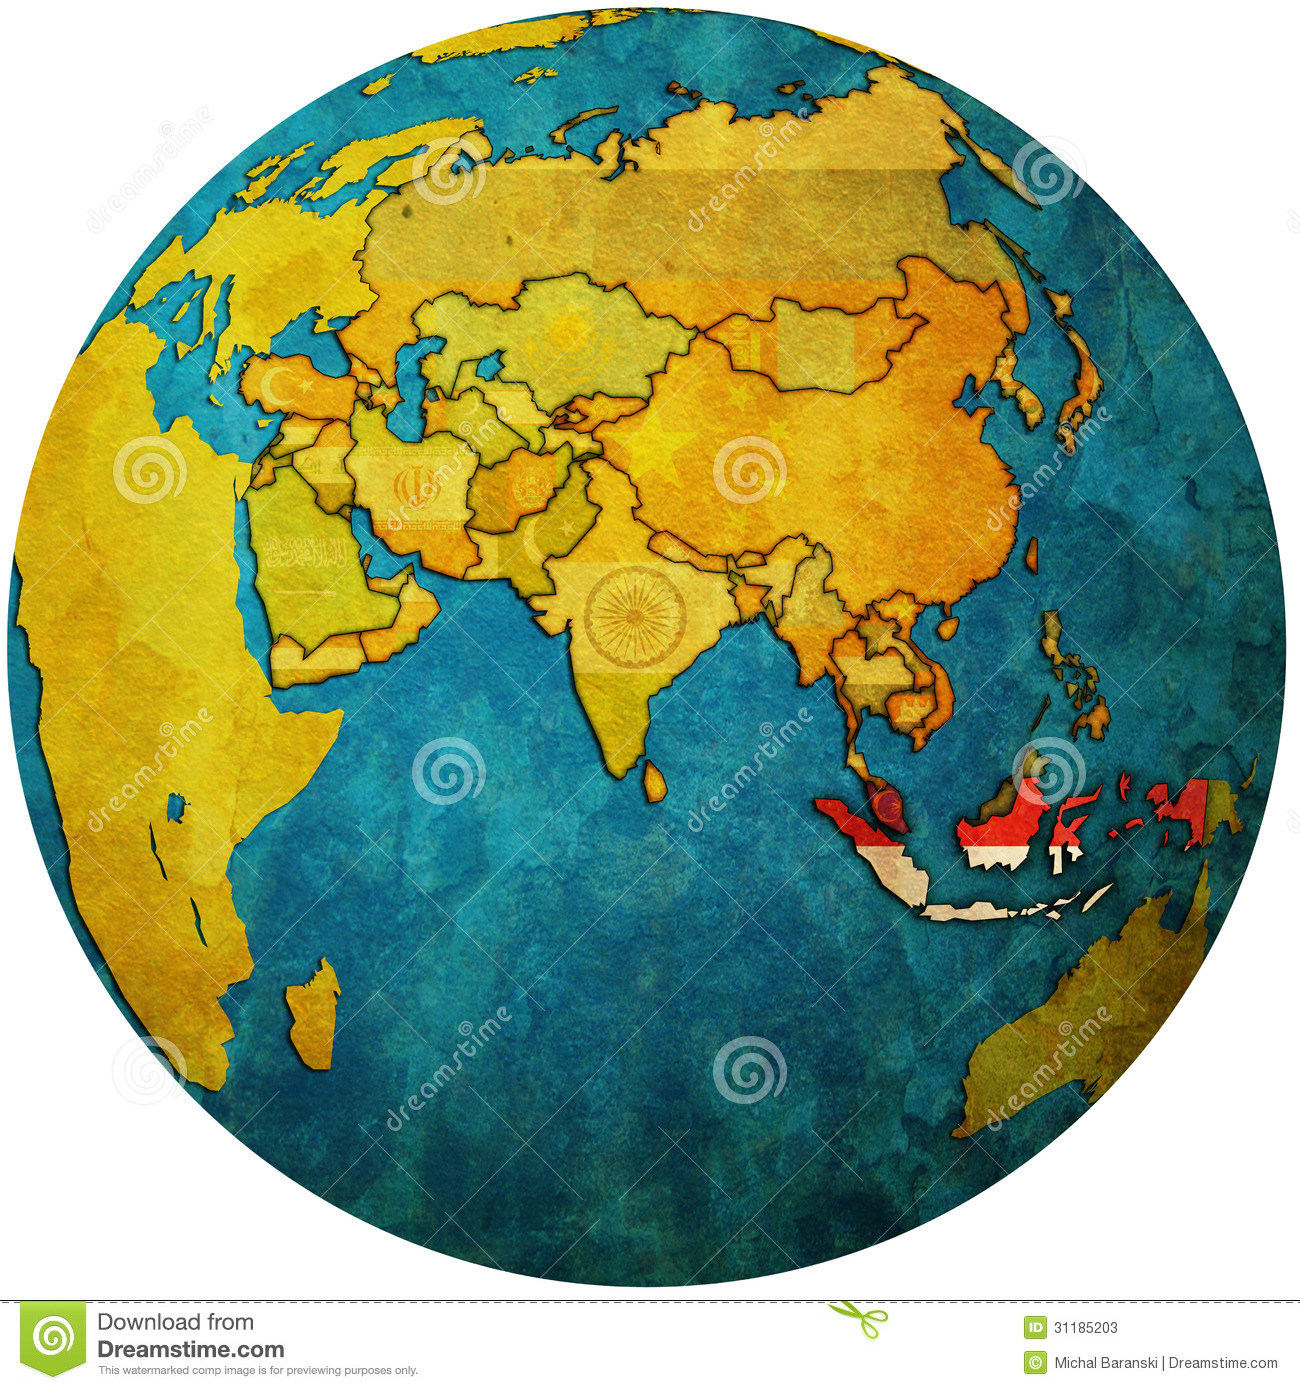 Indonesia on globe map stock illustration. Illustration of territory ...